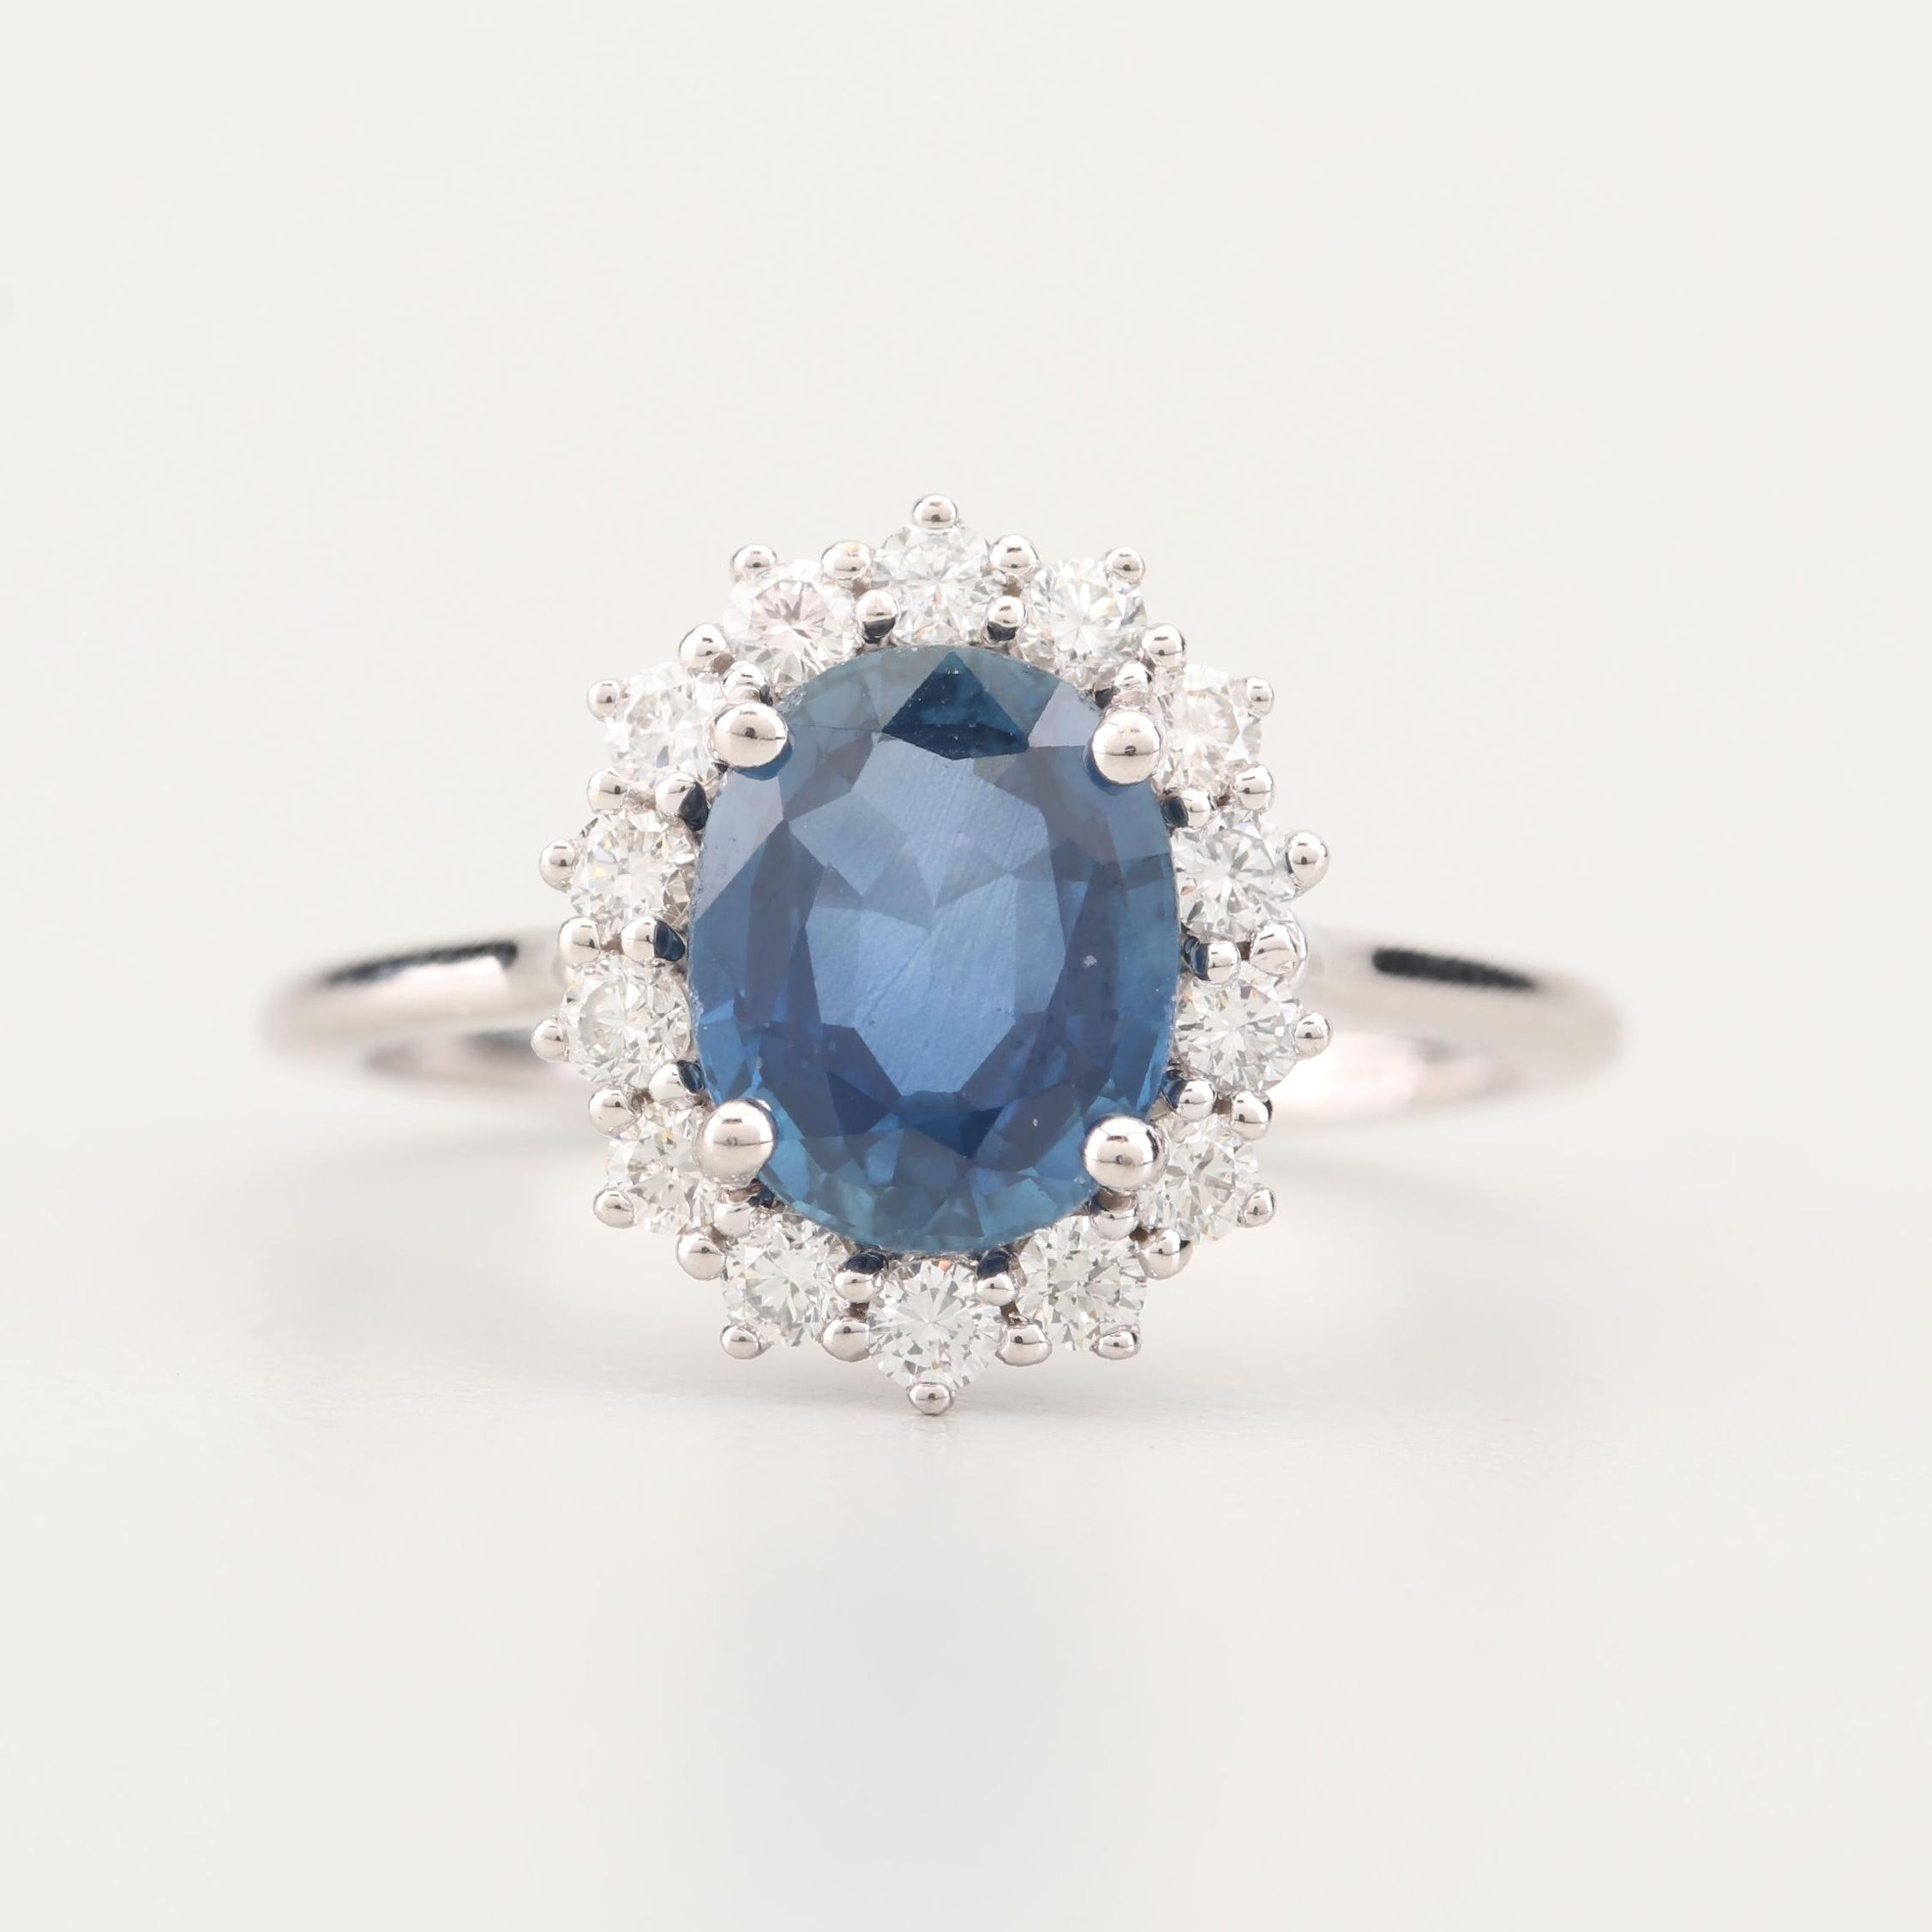 14K White Gold 2.26 CT Sapphire and Diamond Ring with GIA Report